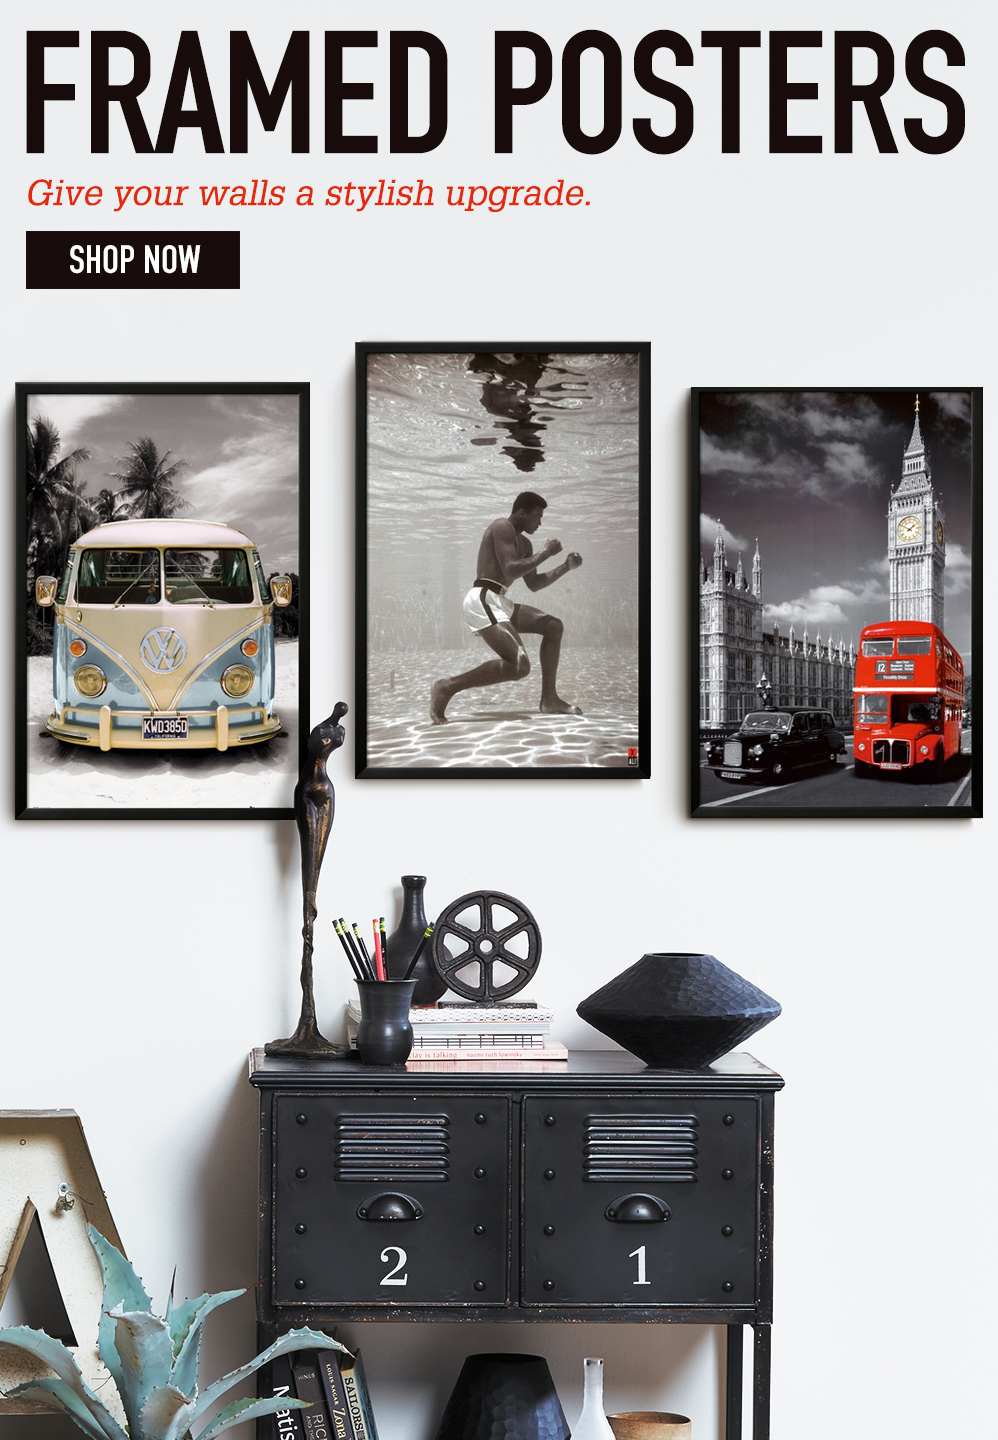 FRAMED POSTERS. Give your walls a stylish upgrade. SHOP NOW